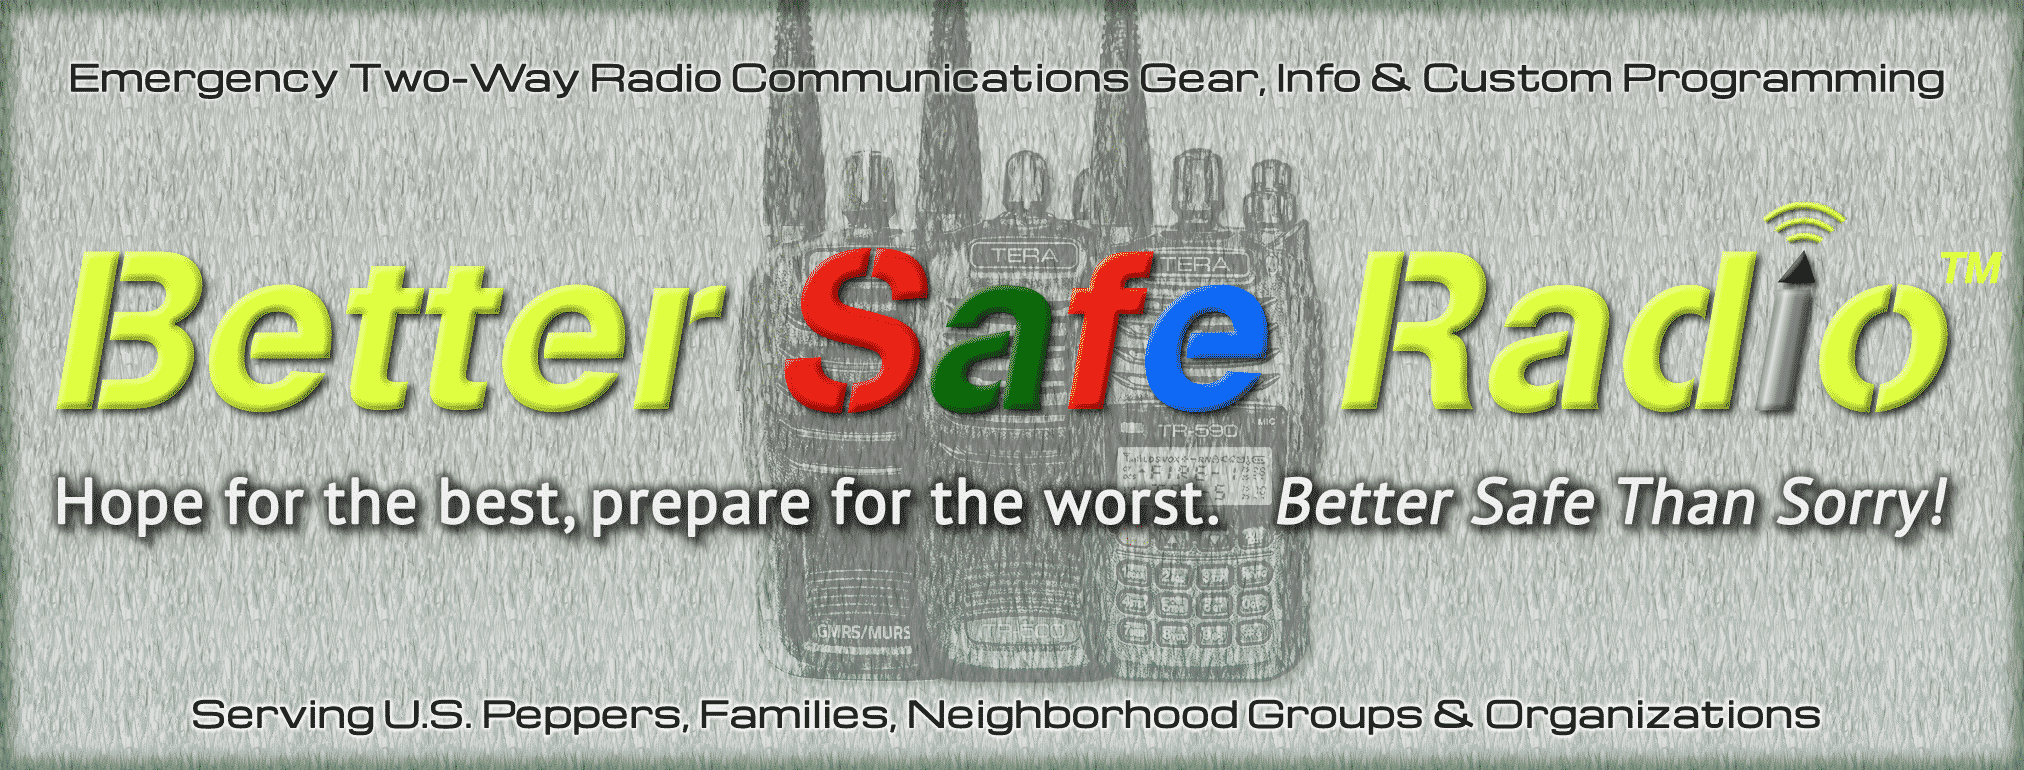 BetterSafeRadio.com – Emergency Two-Way Radio Communications Gear, Info and Custom Programming